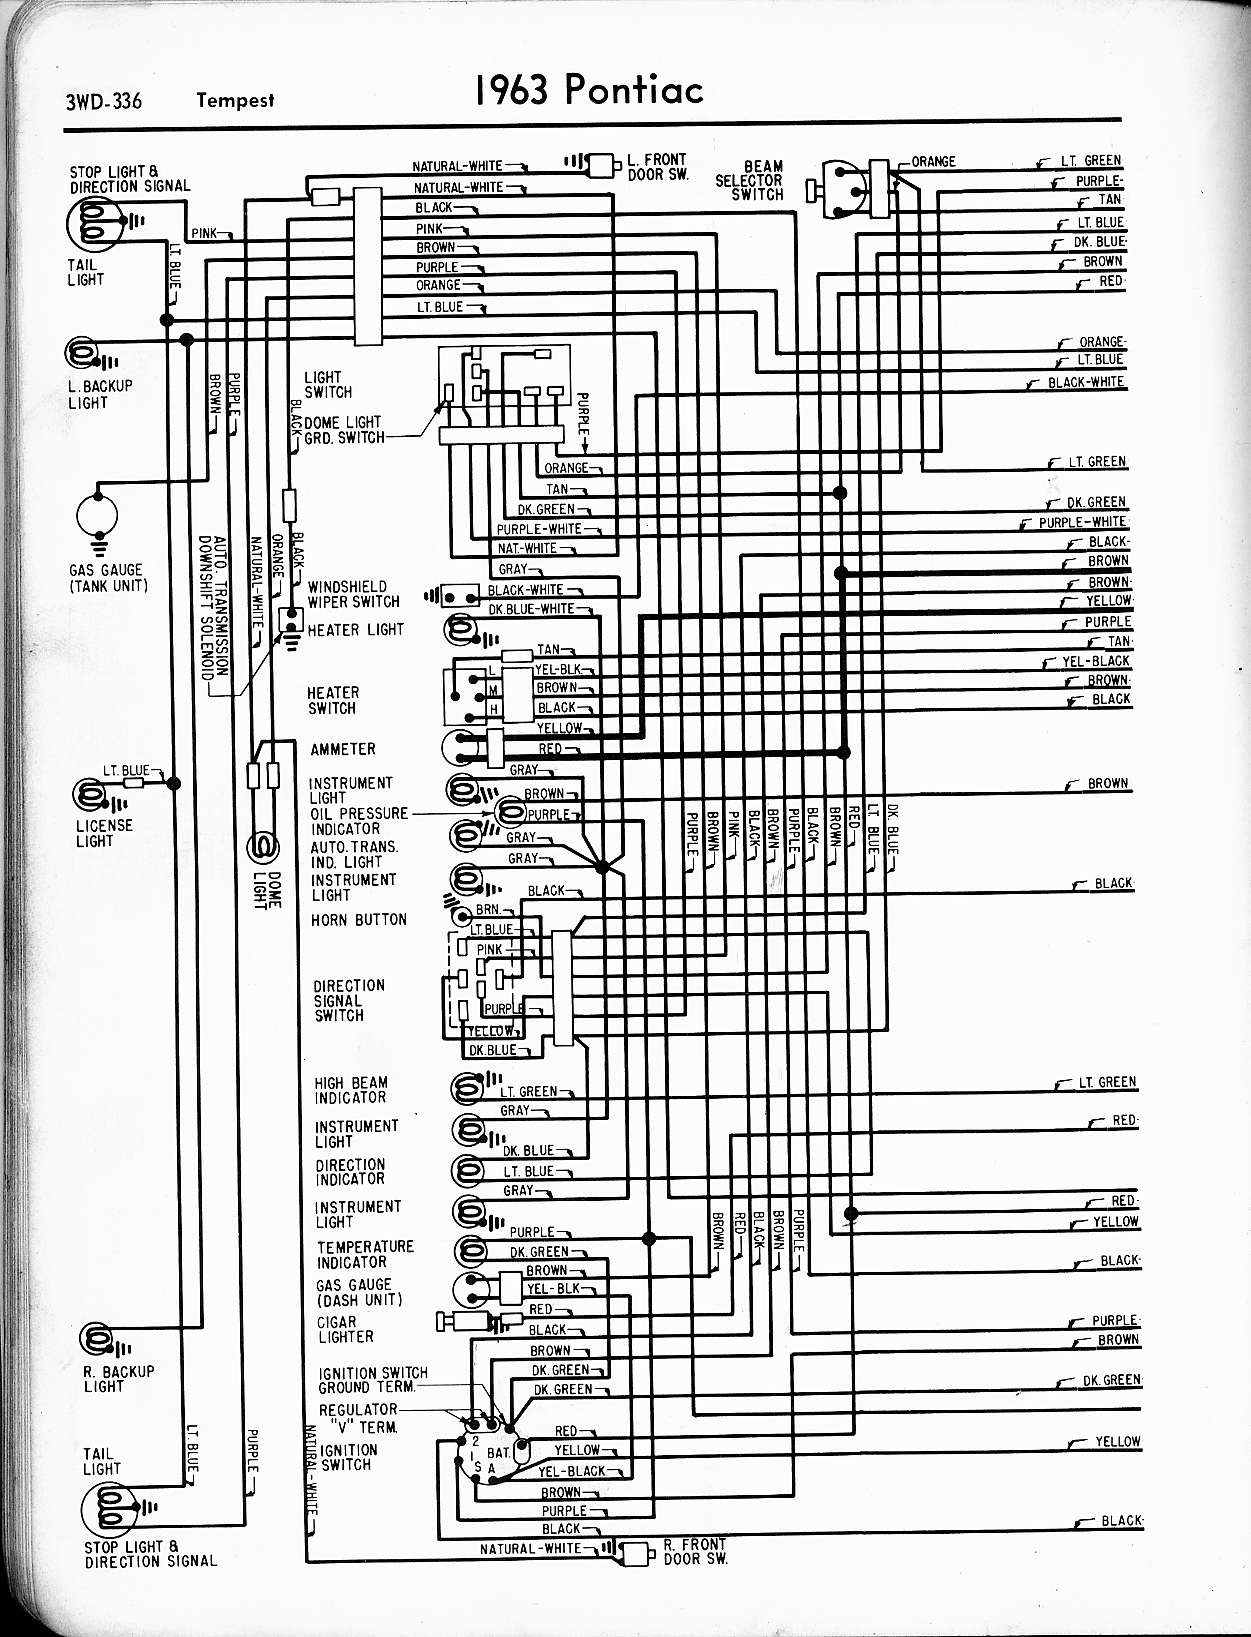 1968 pontiac lemans wiring diagram great installation of wiring 1976 Pontiac LeMans 1968 pontiac lemans wiring diagram